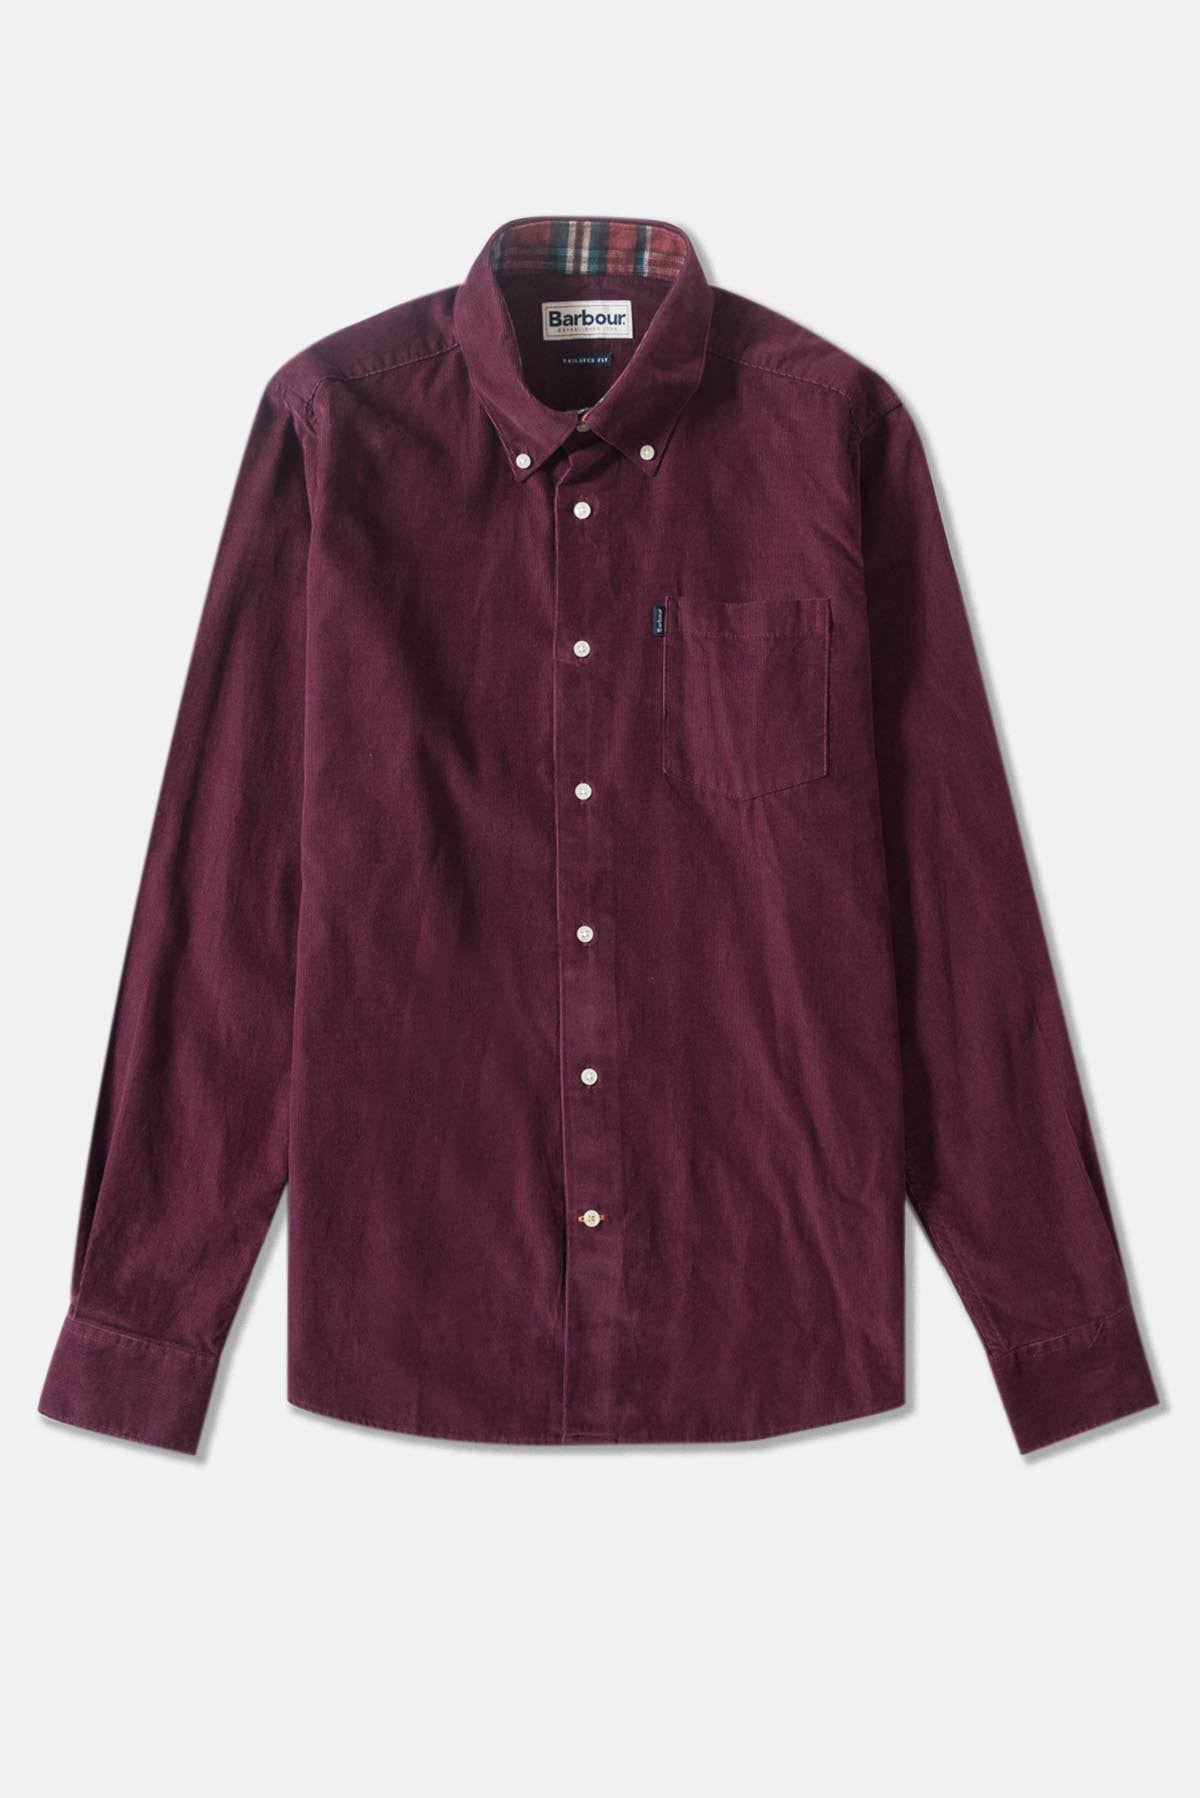 Barbour Stapleton Morris Cord Men's Shirt